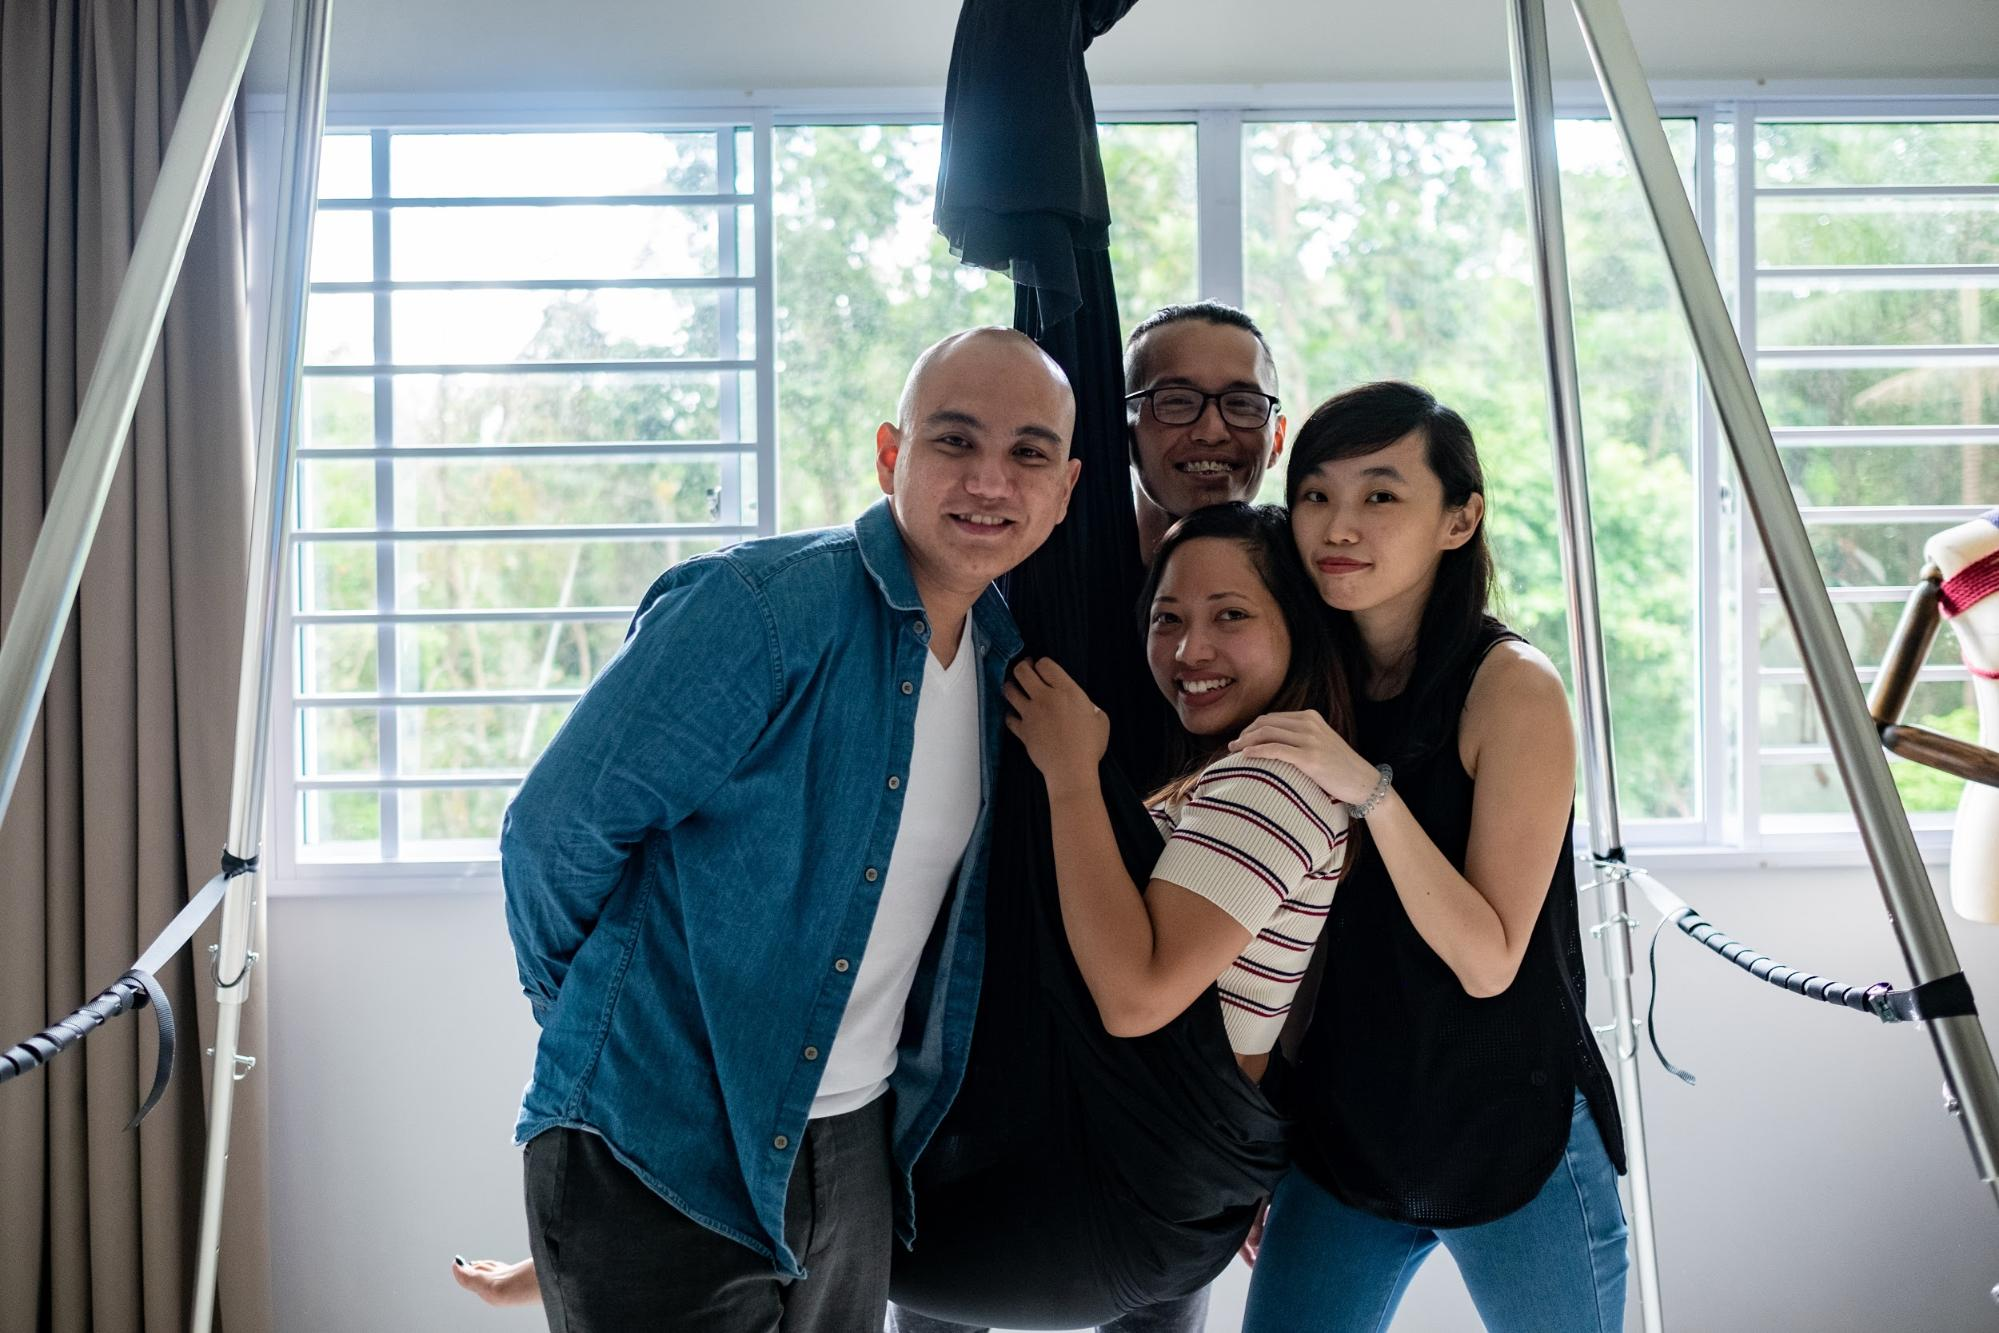 This Polyamorous Commune in Singapore Aims to Help People Find Authenticity in Relationships